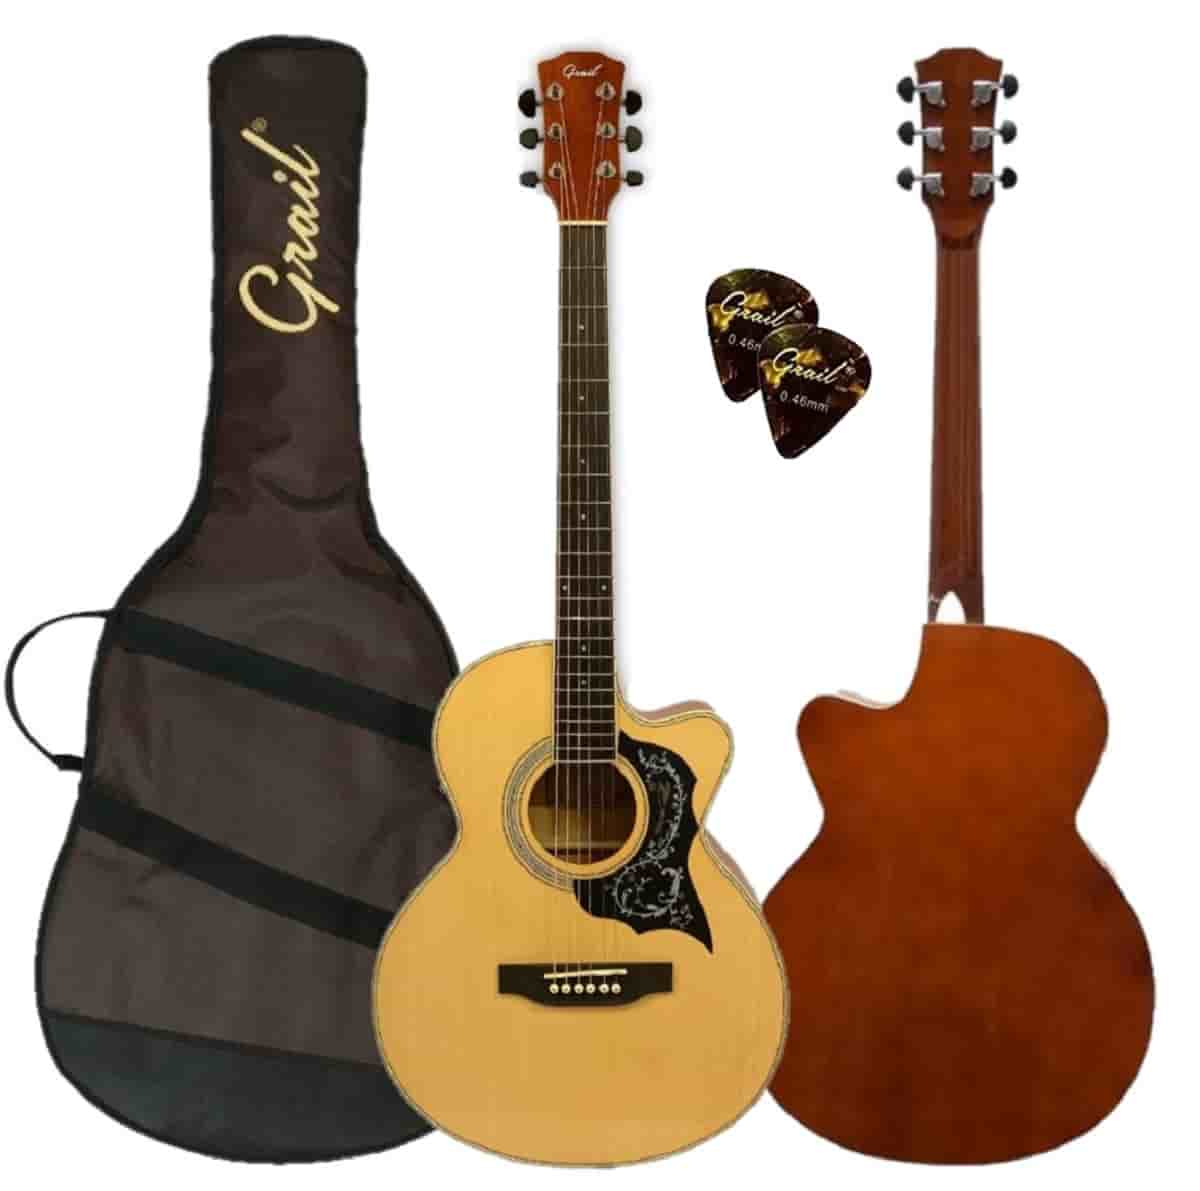 Grail Allure A190C SP Acoustic Guitar Cutaway Spruce Top  (FREE Water Resistant Padded Gig Bag & 2 Picks)